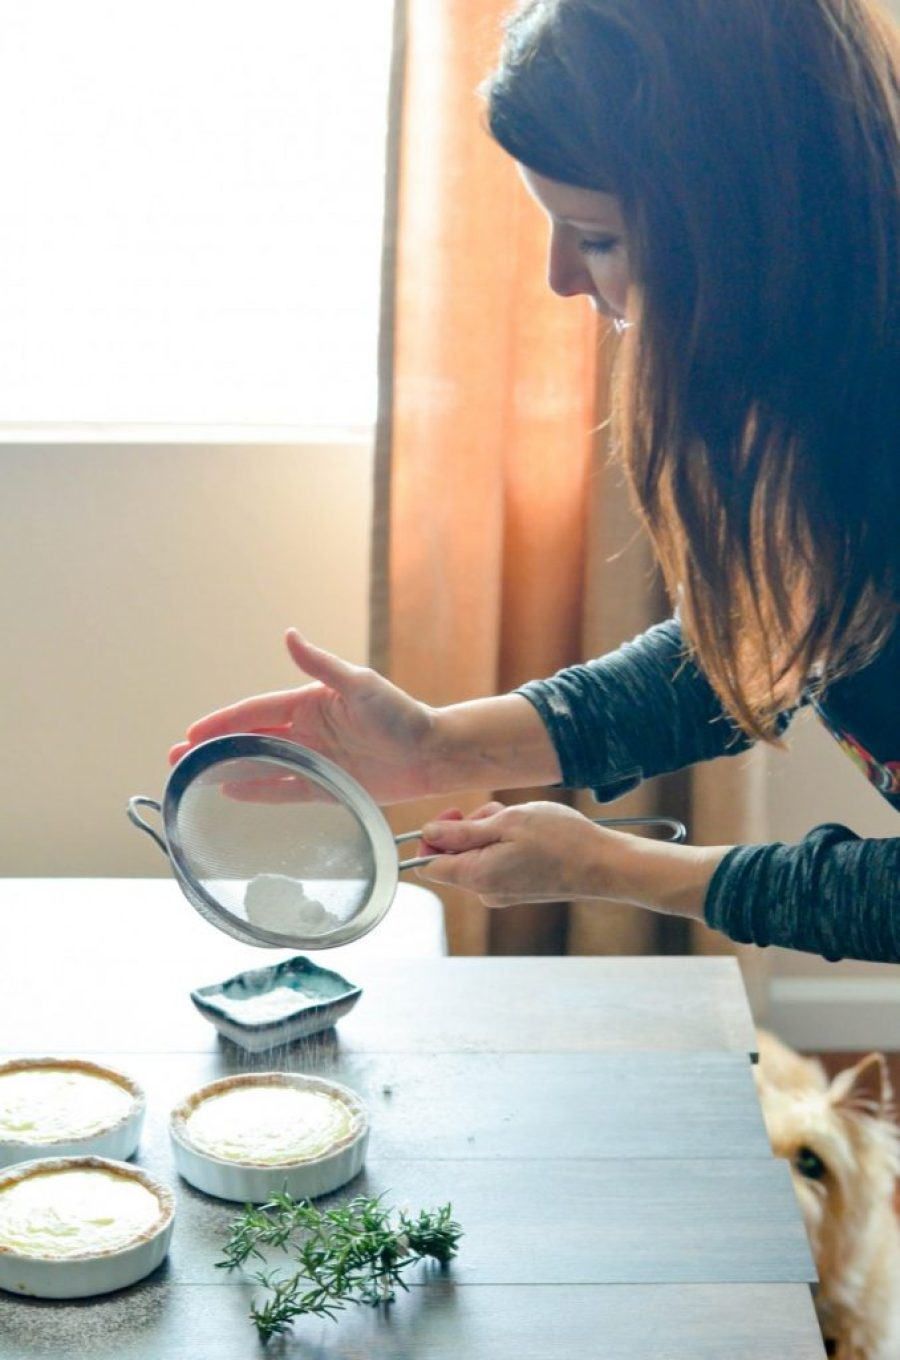 Karista working on Lemon Rosemary Tarts with Tank observing_